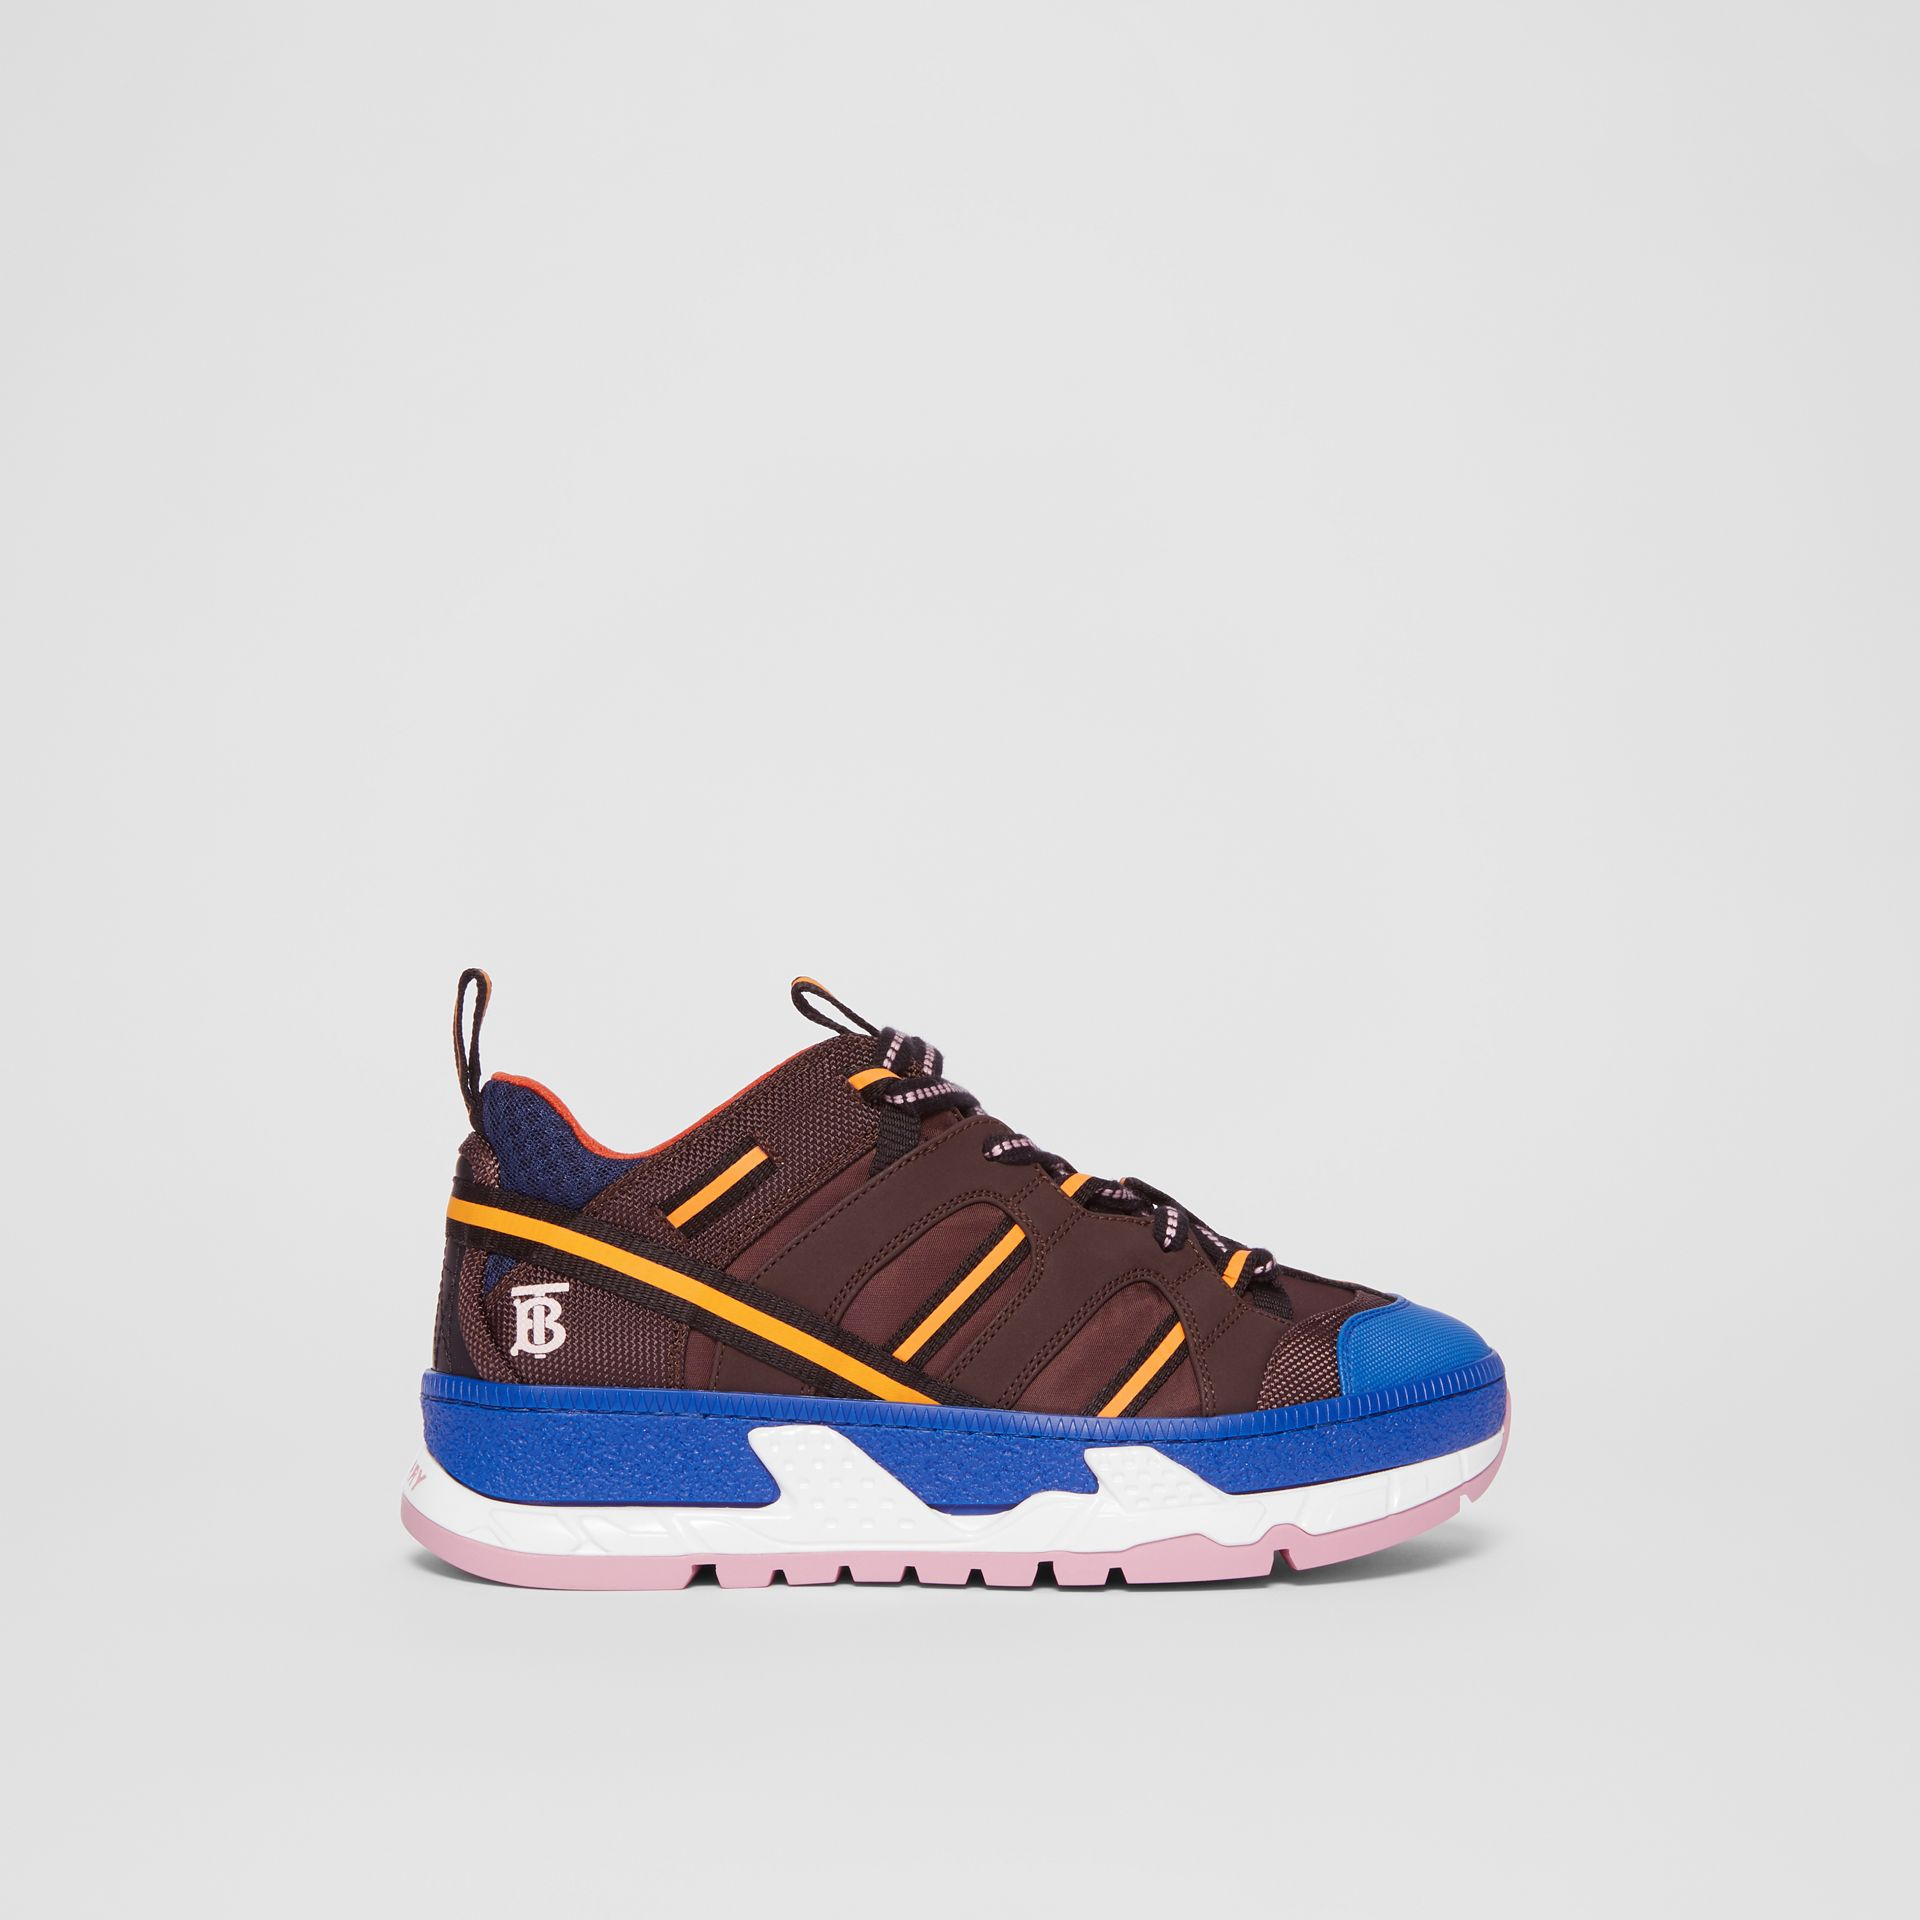 Nylon and Mesh Union Sneakers in Coffee/blue - Women | Burberry - gallery image 5